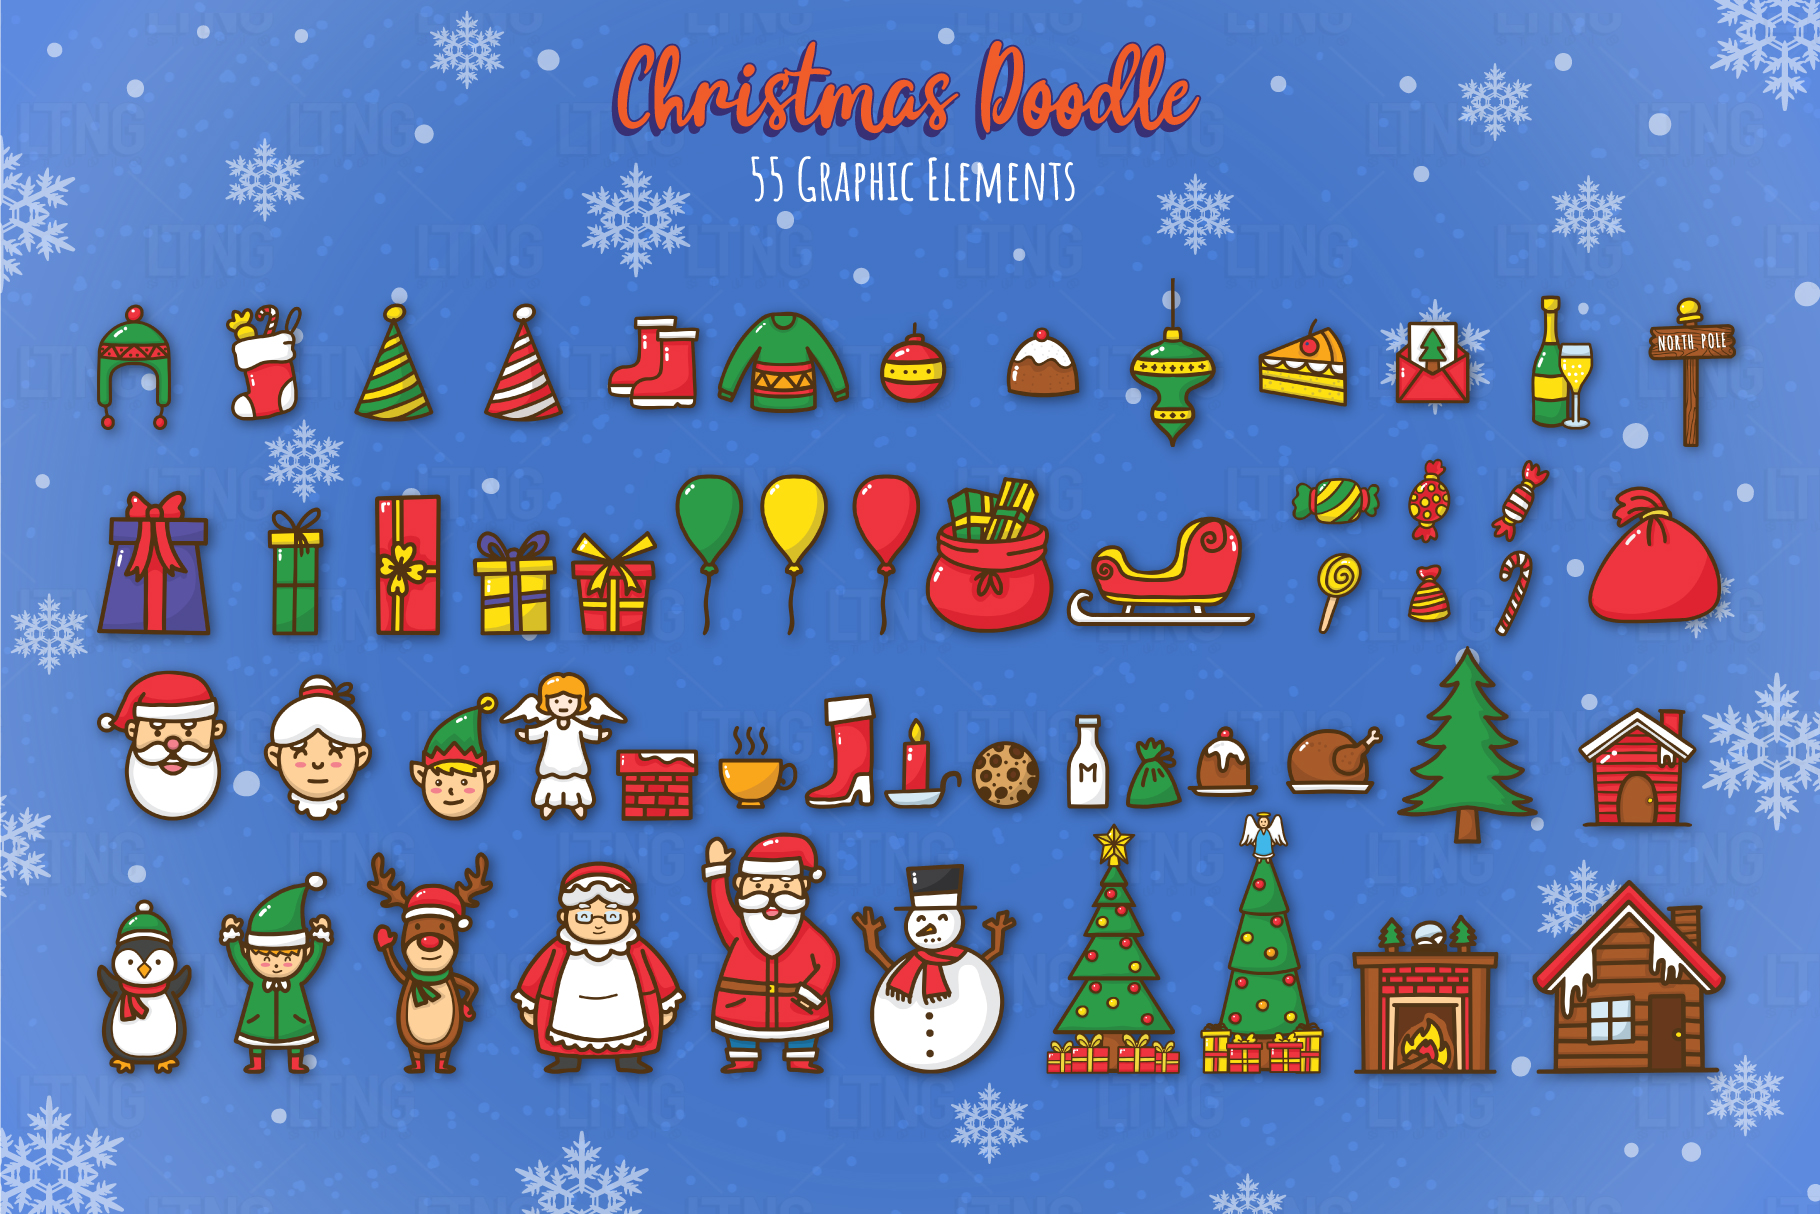 Christmas Doodle Graphic Element 2 example image 2